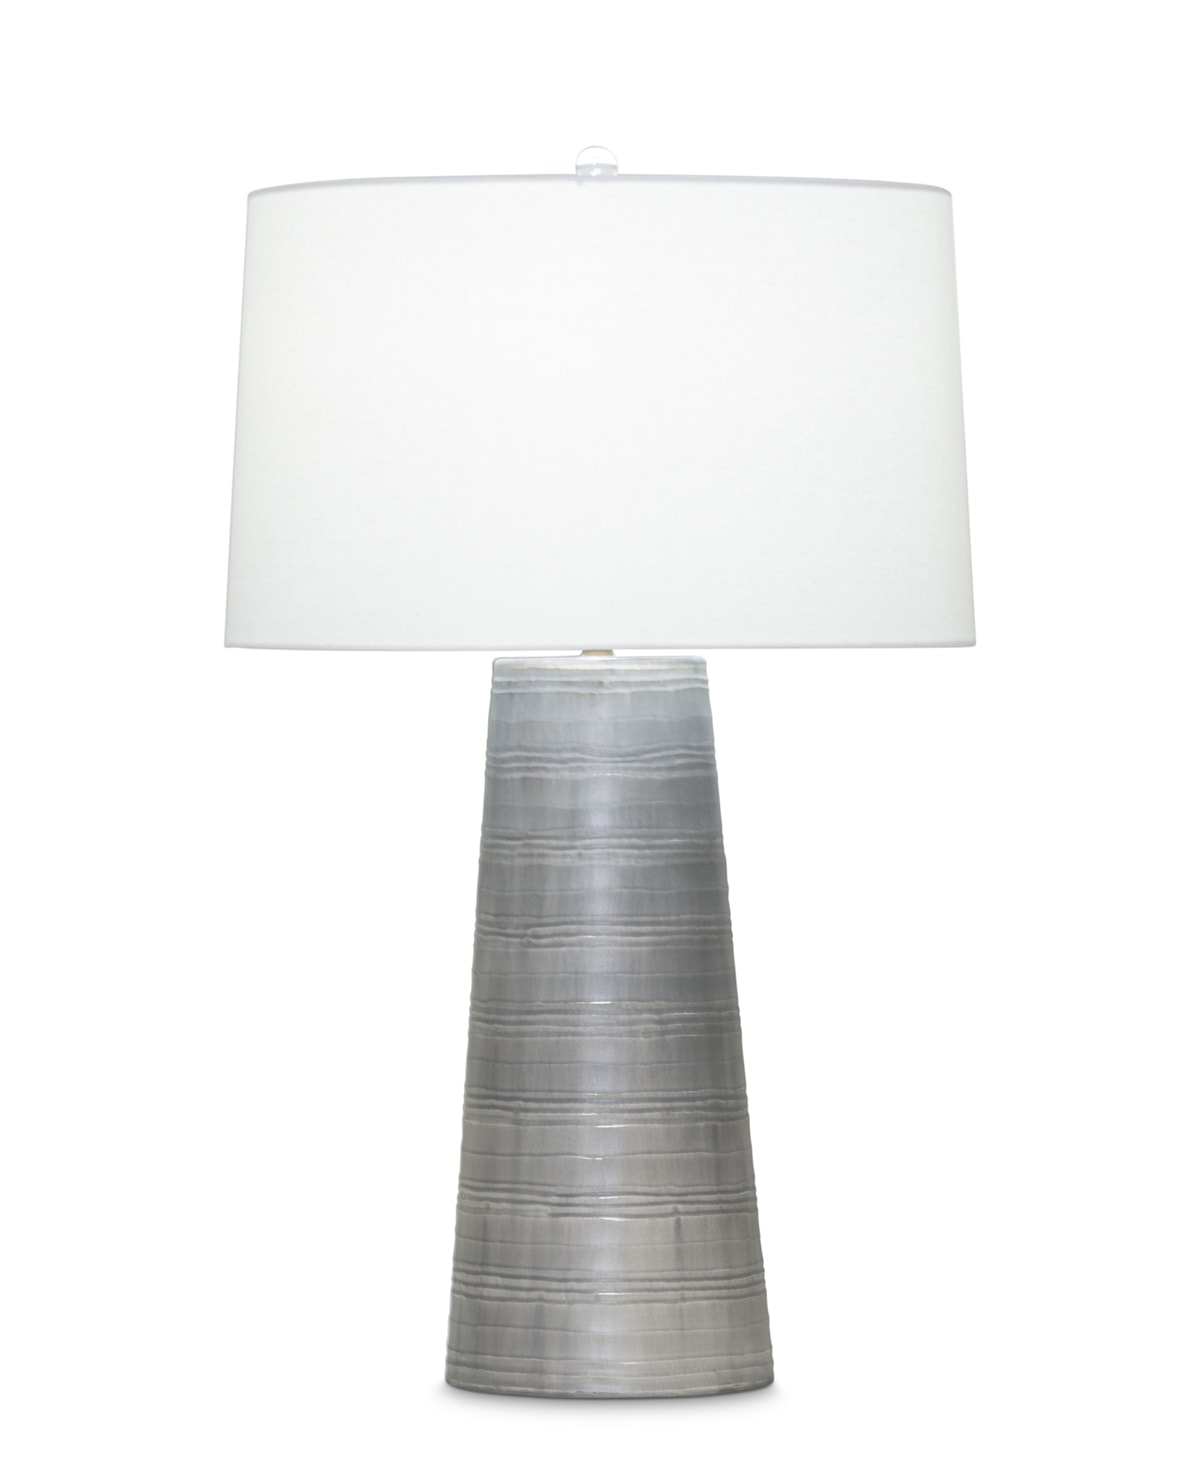 FlowDecor Charles Table Lamp in mouth-blown glass with grey carved finish and off-white linen tapered drum shade (# 3902)